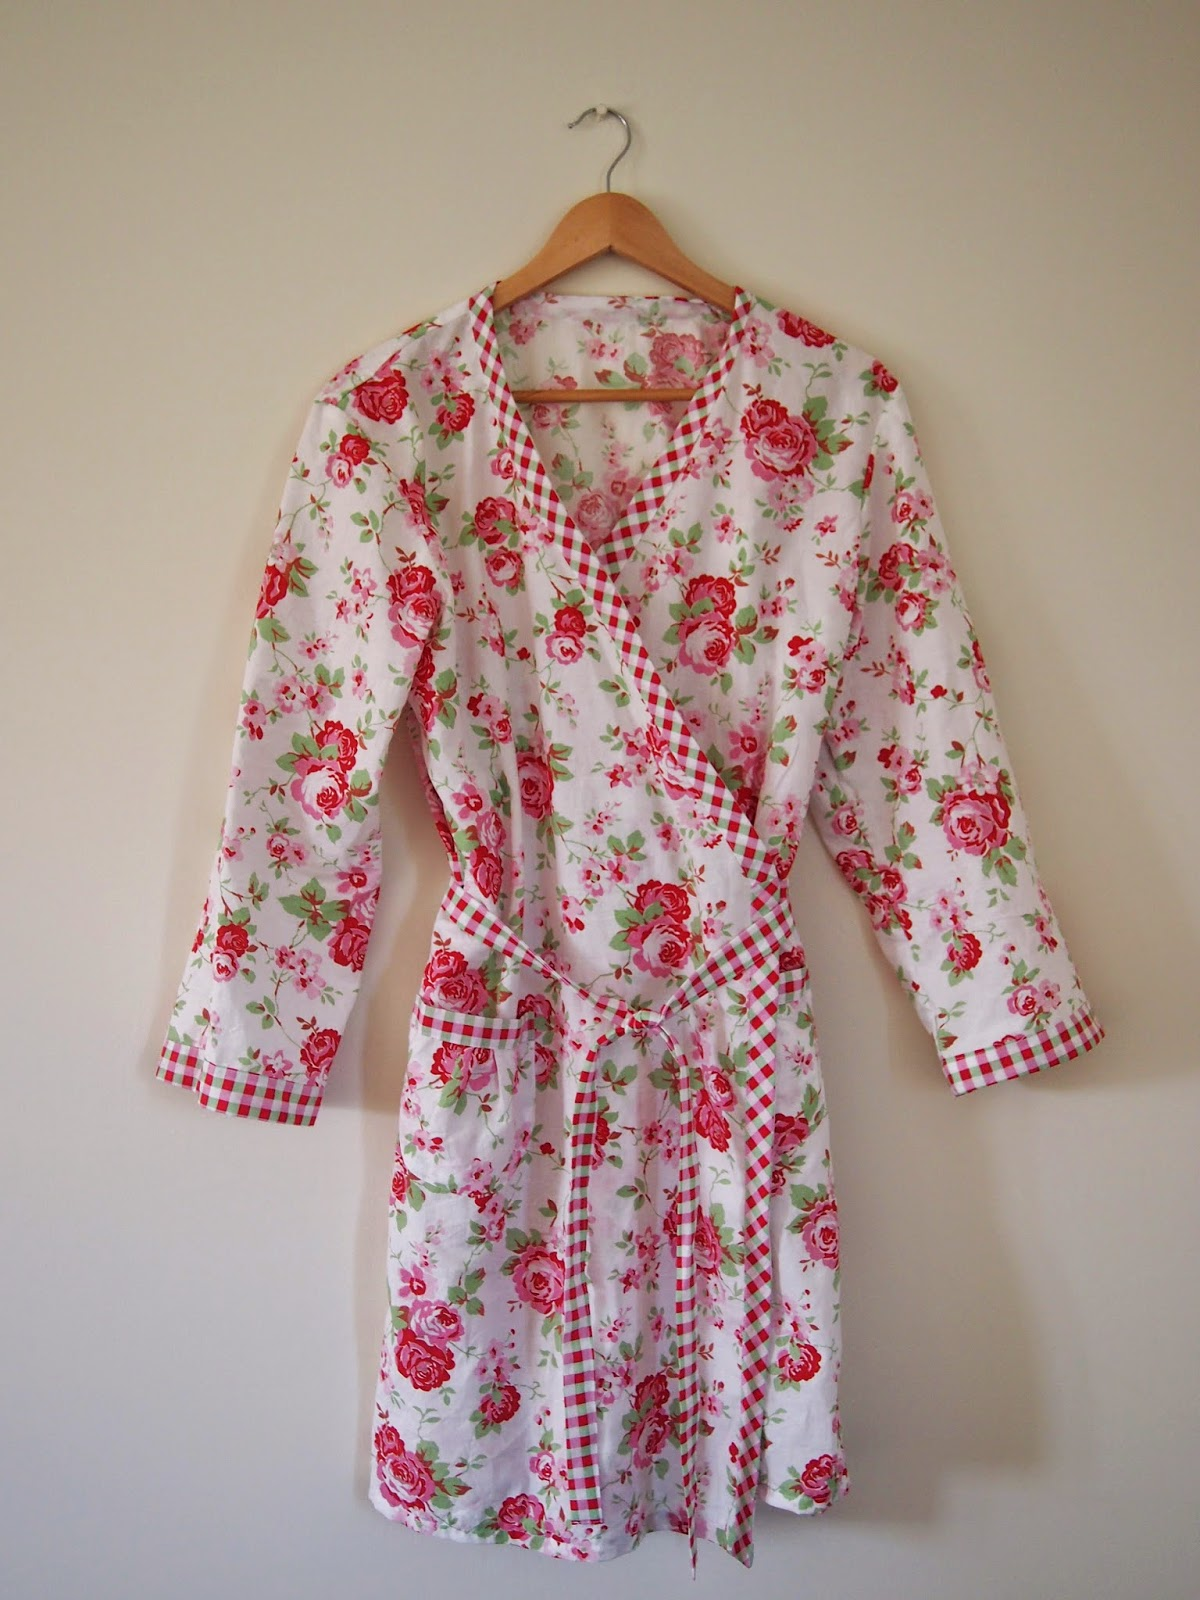 Nightingale & Dolittle: Duvet Cover to Dressing Gown